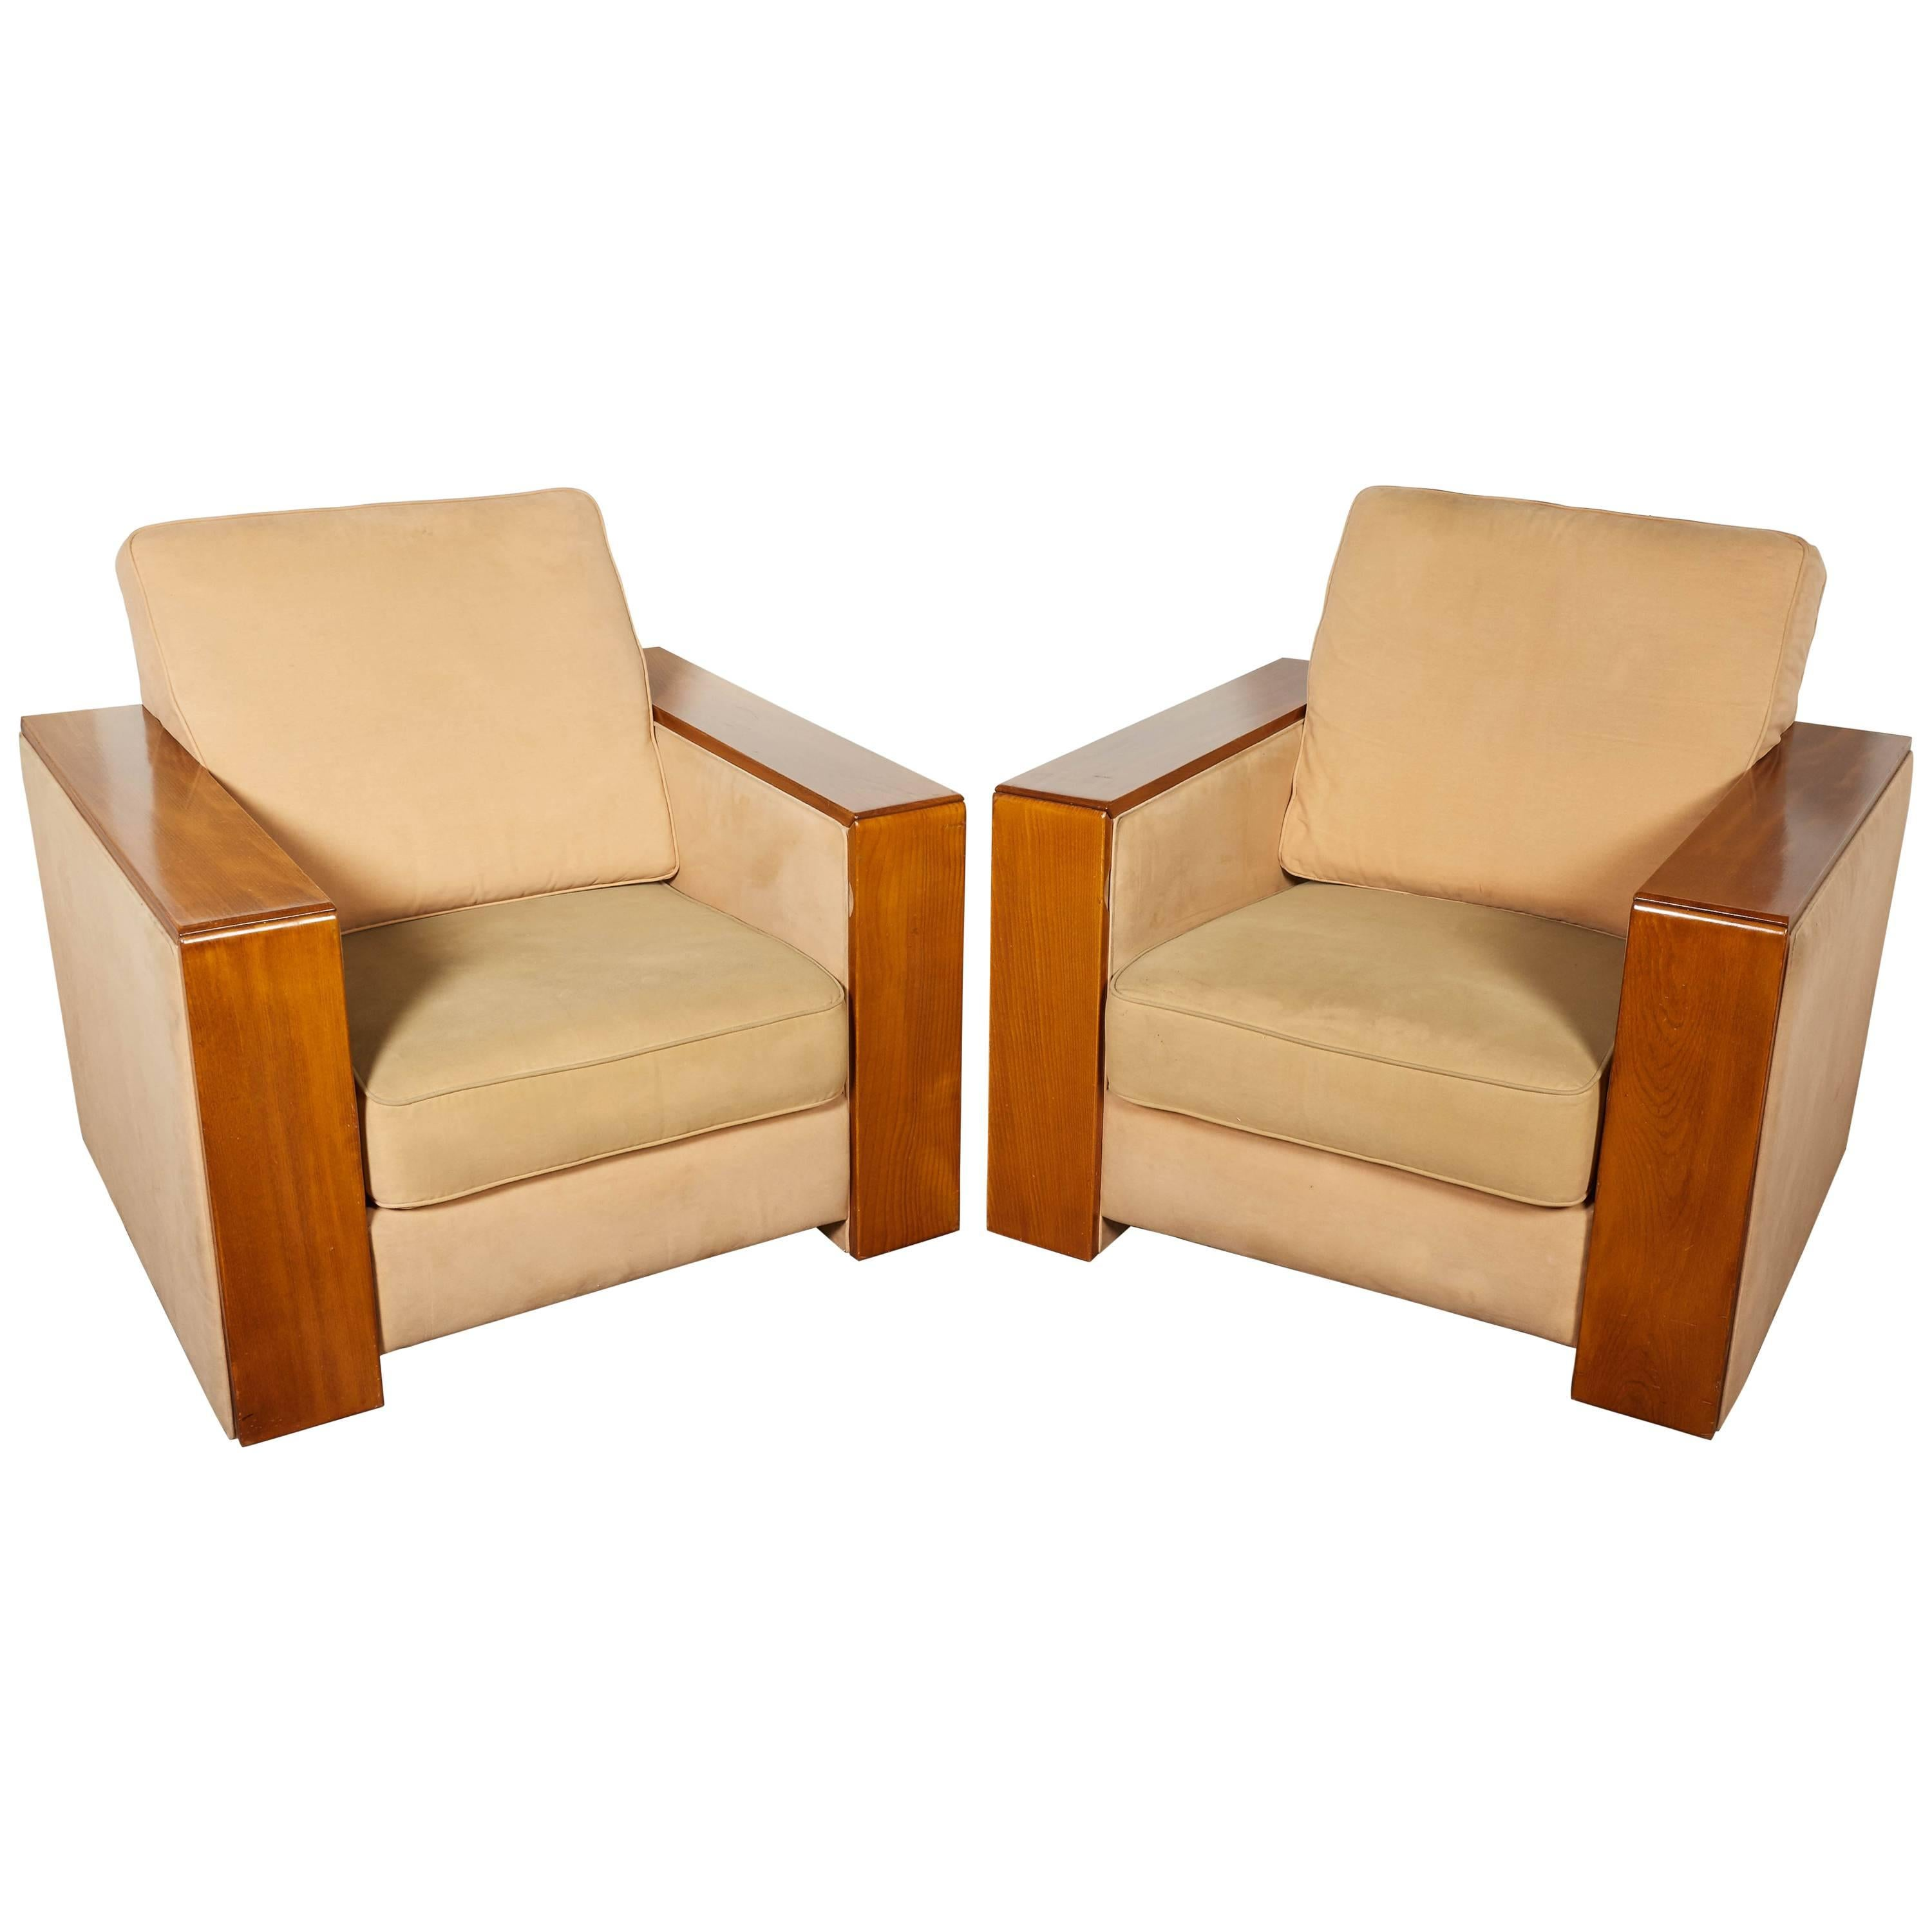 Pair Of Large French Mid Century Modern Wide Arm Cubist Club Chairs For Sale